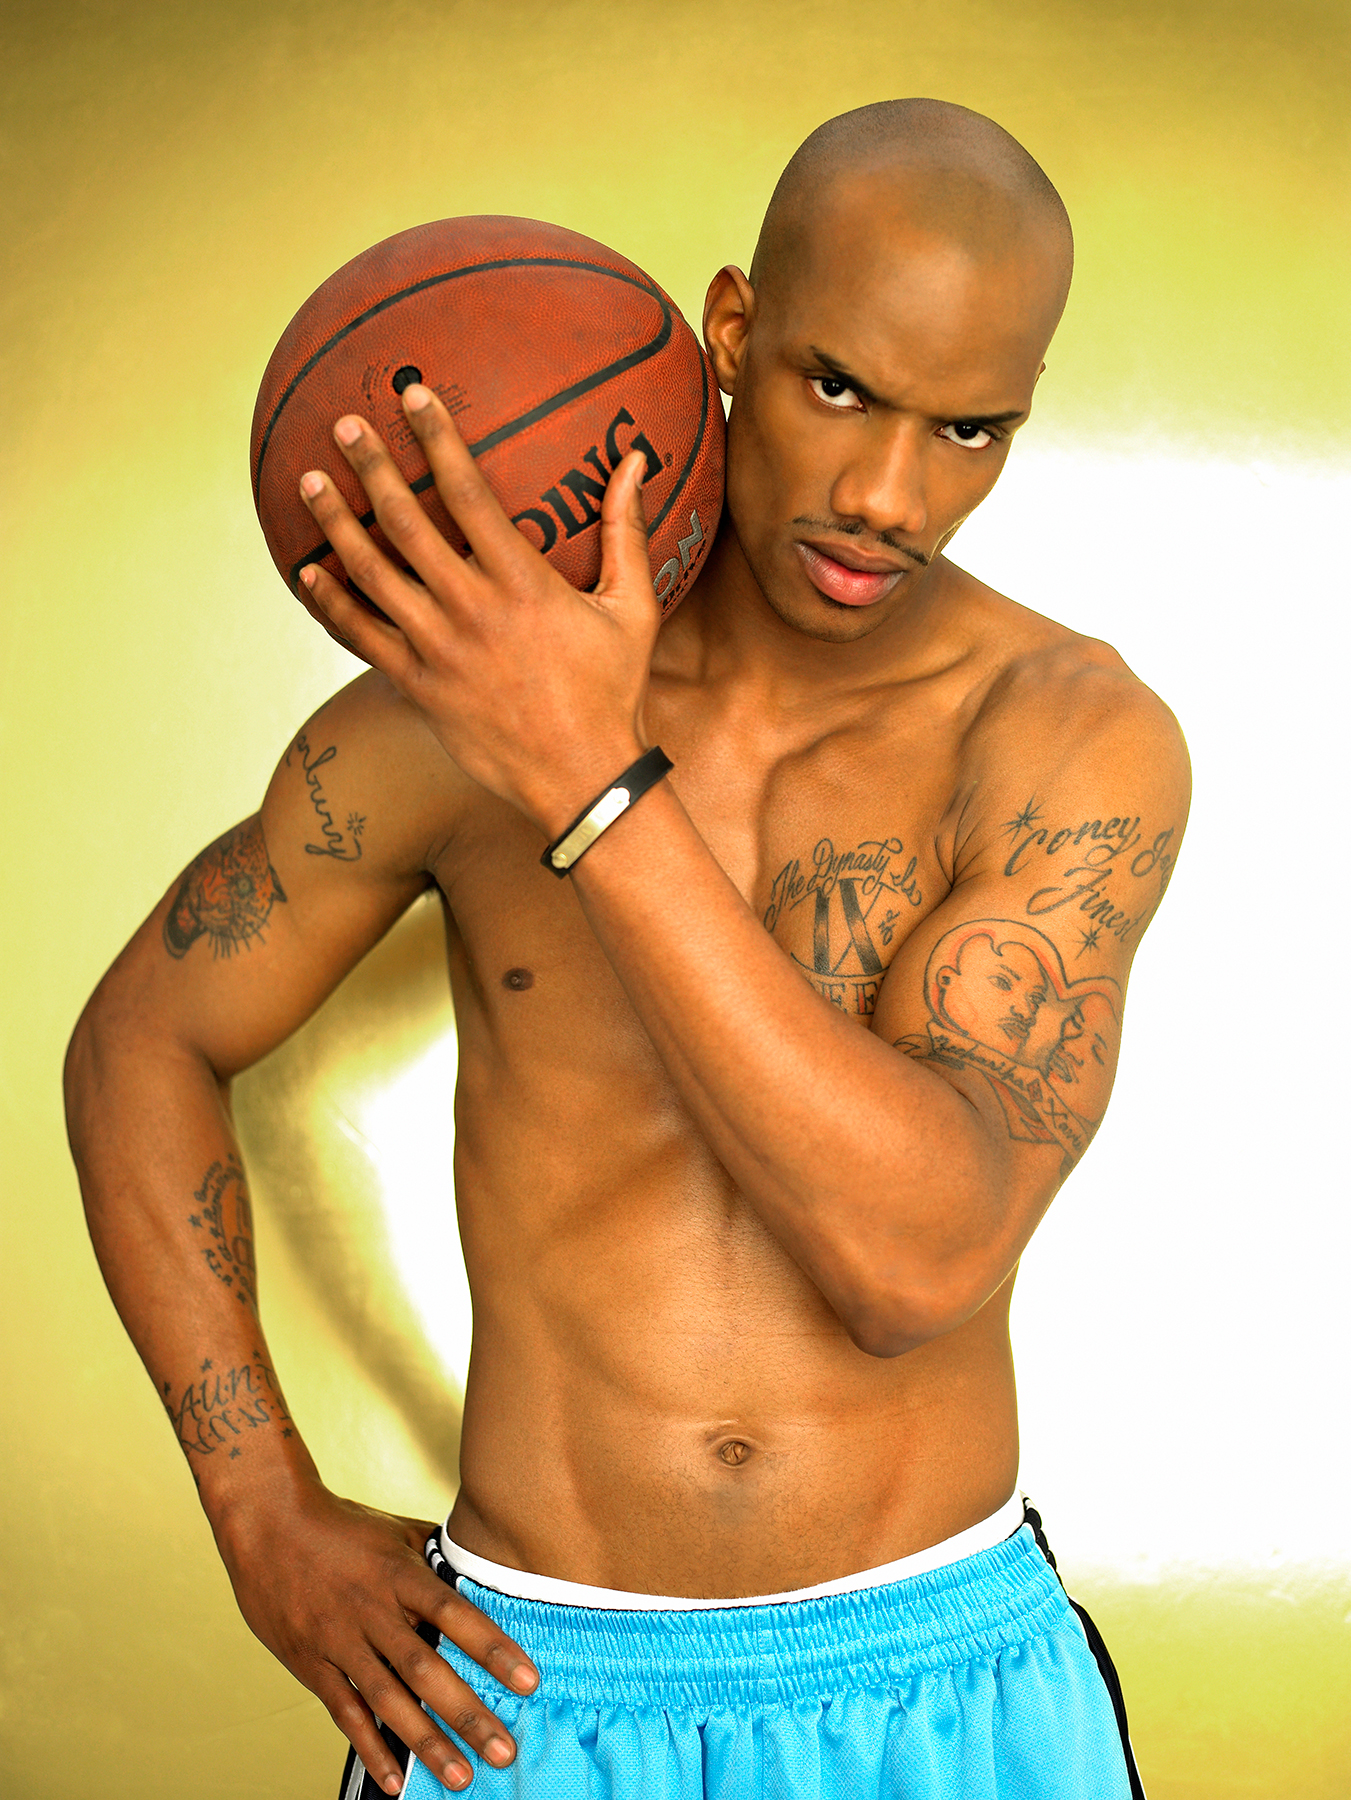 STARBURY-ZECH-MARBURY-BASKETBALL-APPAREL-PORTRAIT-©-JONATHAN-R.-BECKERMAN-PHOTOGRAPHY-26.jpg